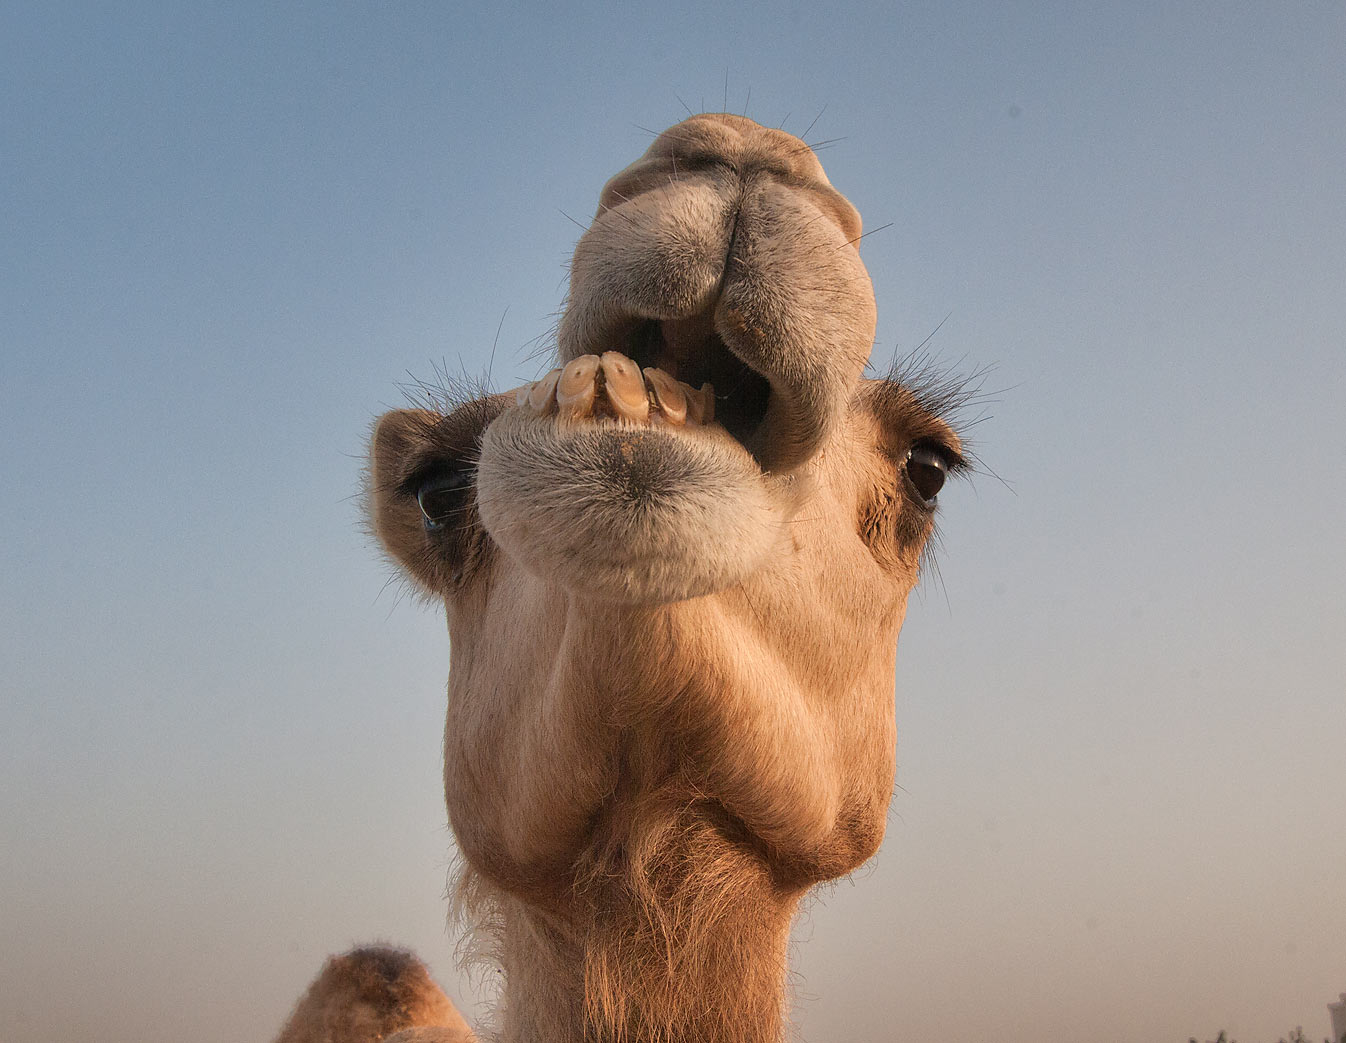 Chewing camel in Animal Market, Wholesale Markets area. Doha, Qatar